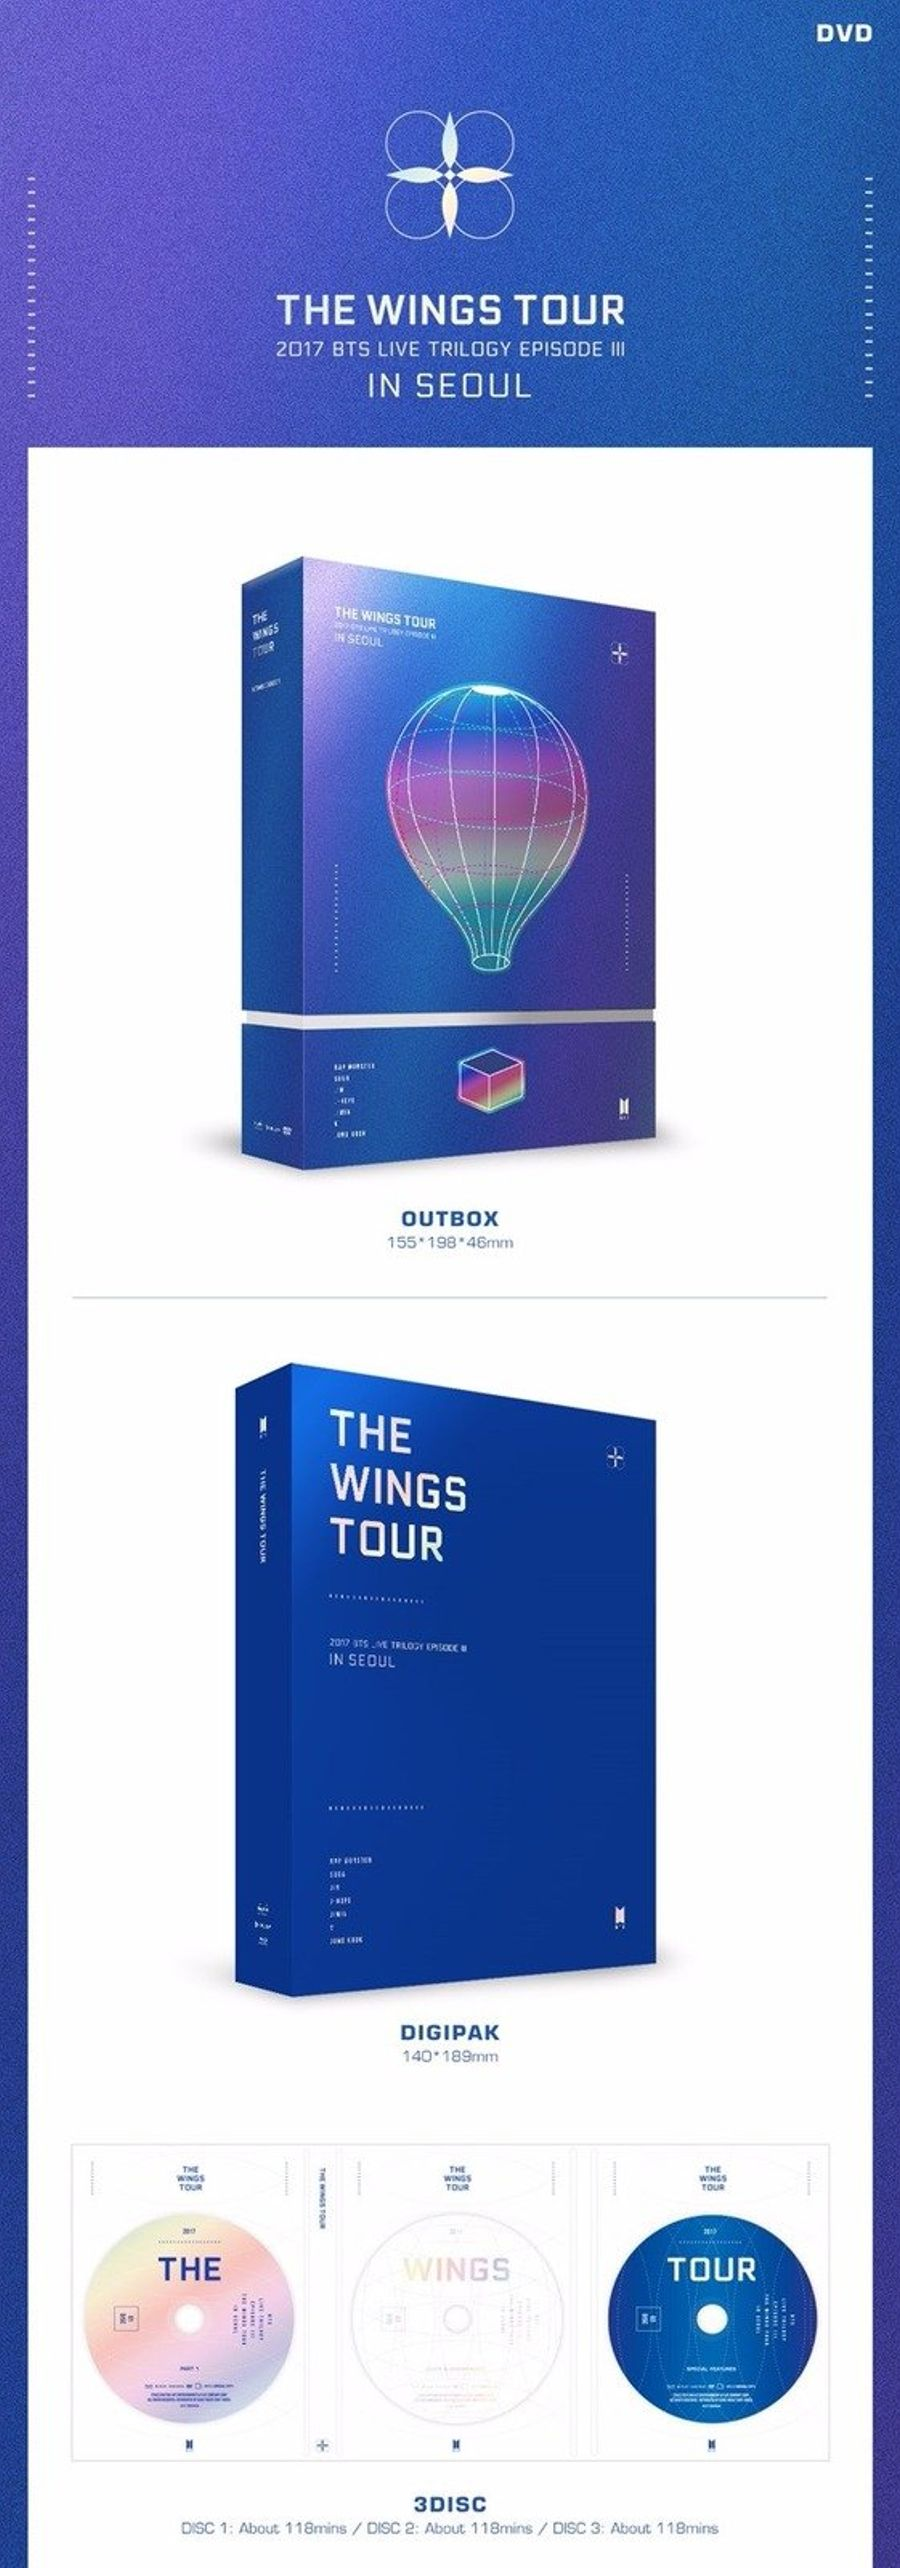 [BTS] The Wings Tour in Seoul Concert DVD Sealed New 2017